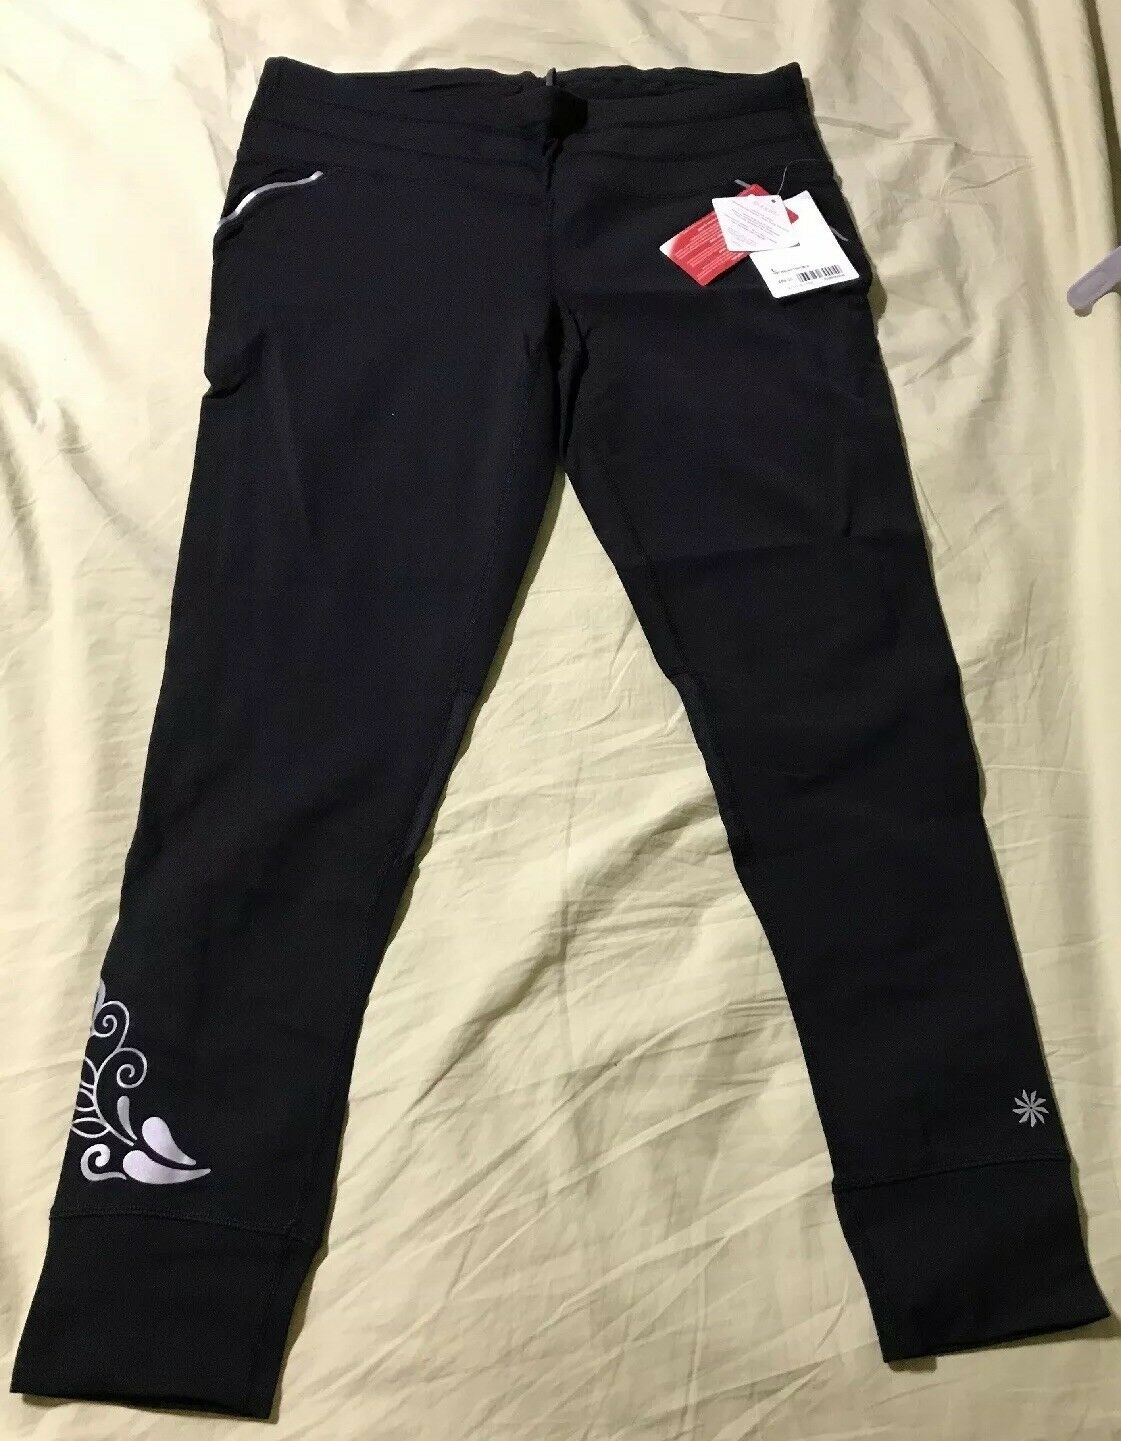 5dea2e1393f40 Women's Relay Running Tights- NWT- Reflective Size Large Details- Athleta  nfnafv5003-Activewear Tops